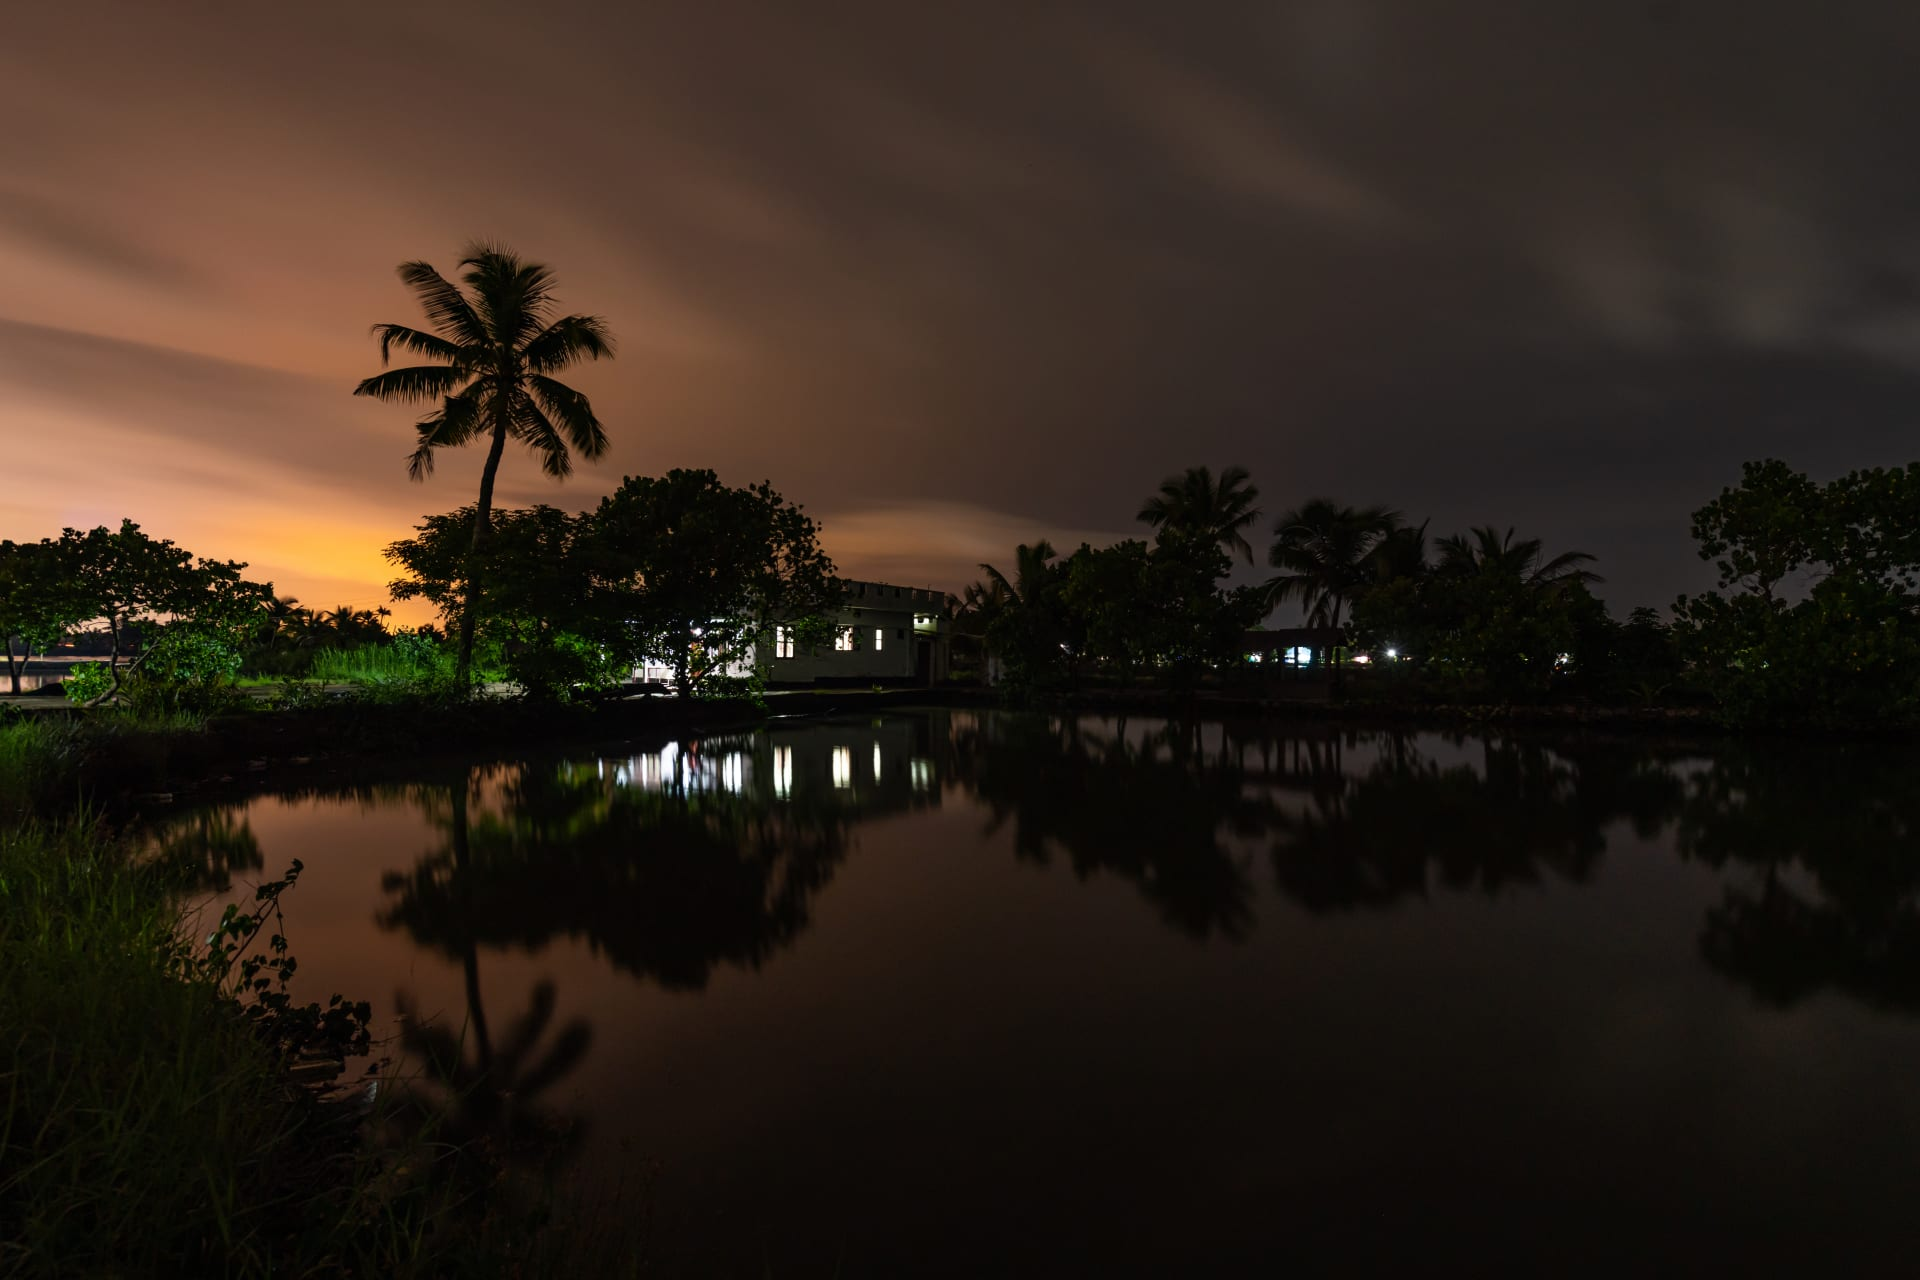 Kerala - Kerala: A Night Walk to Listen to the Voice of Nature